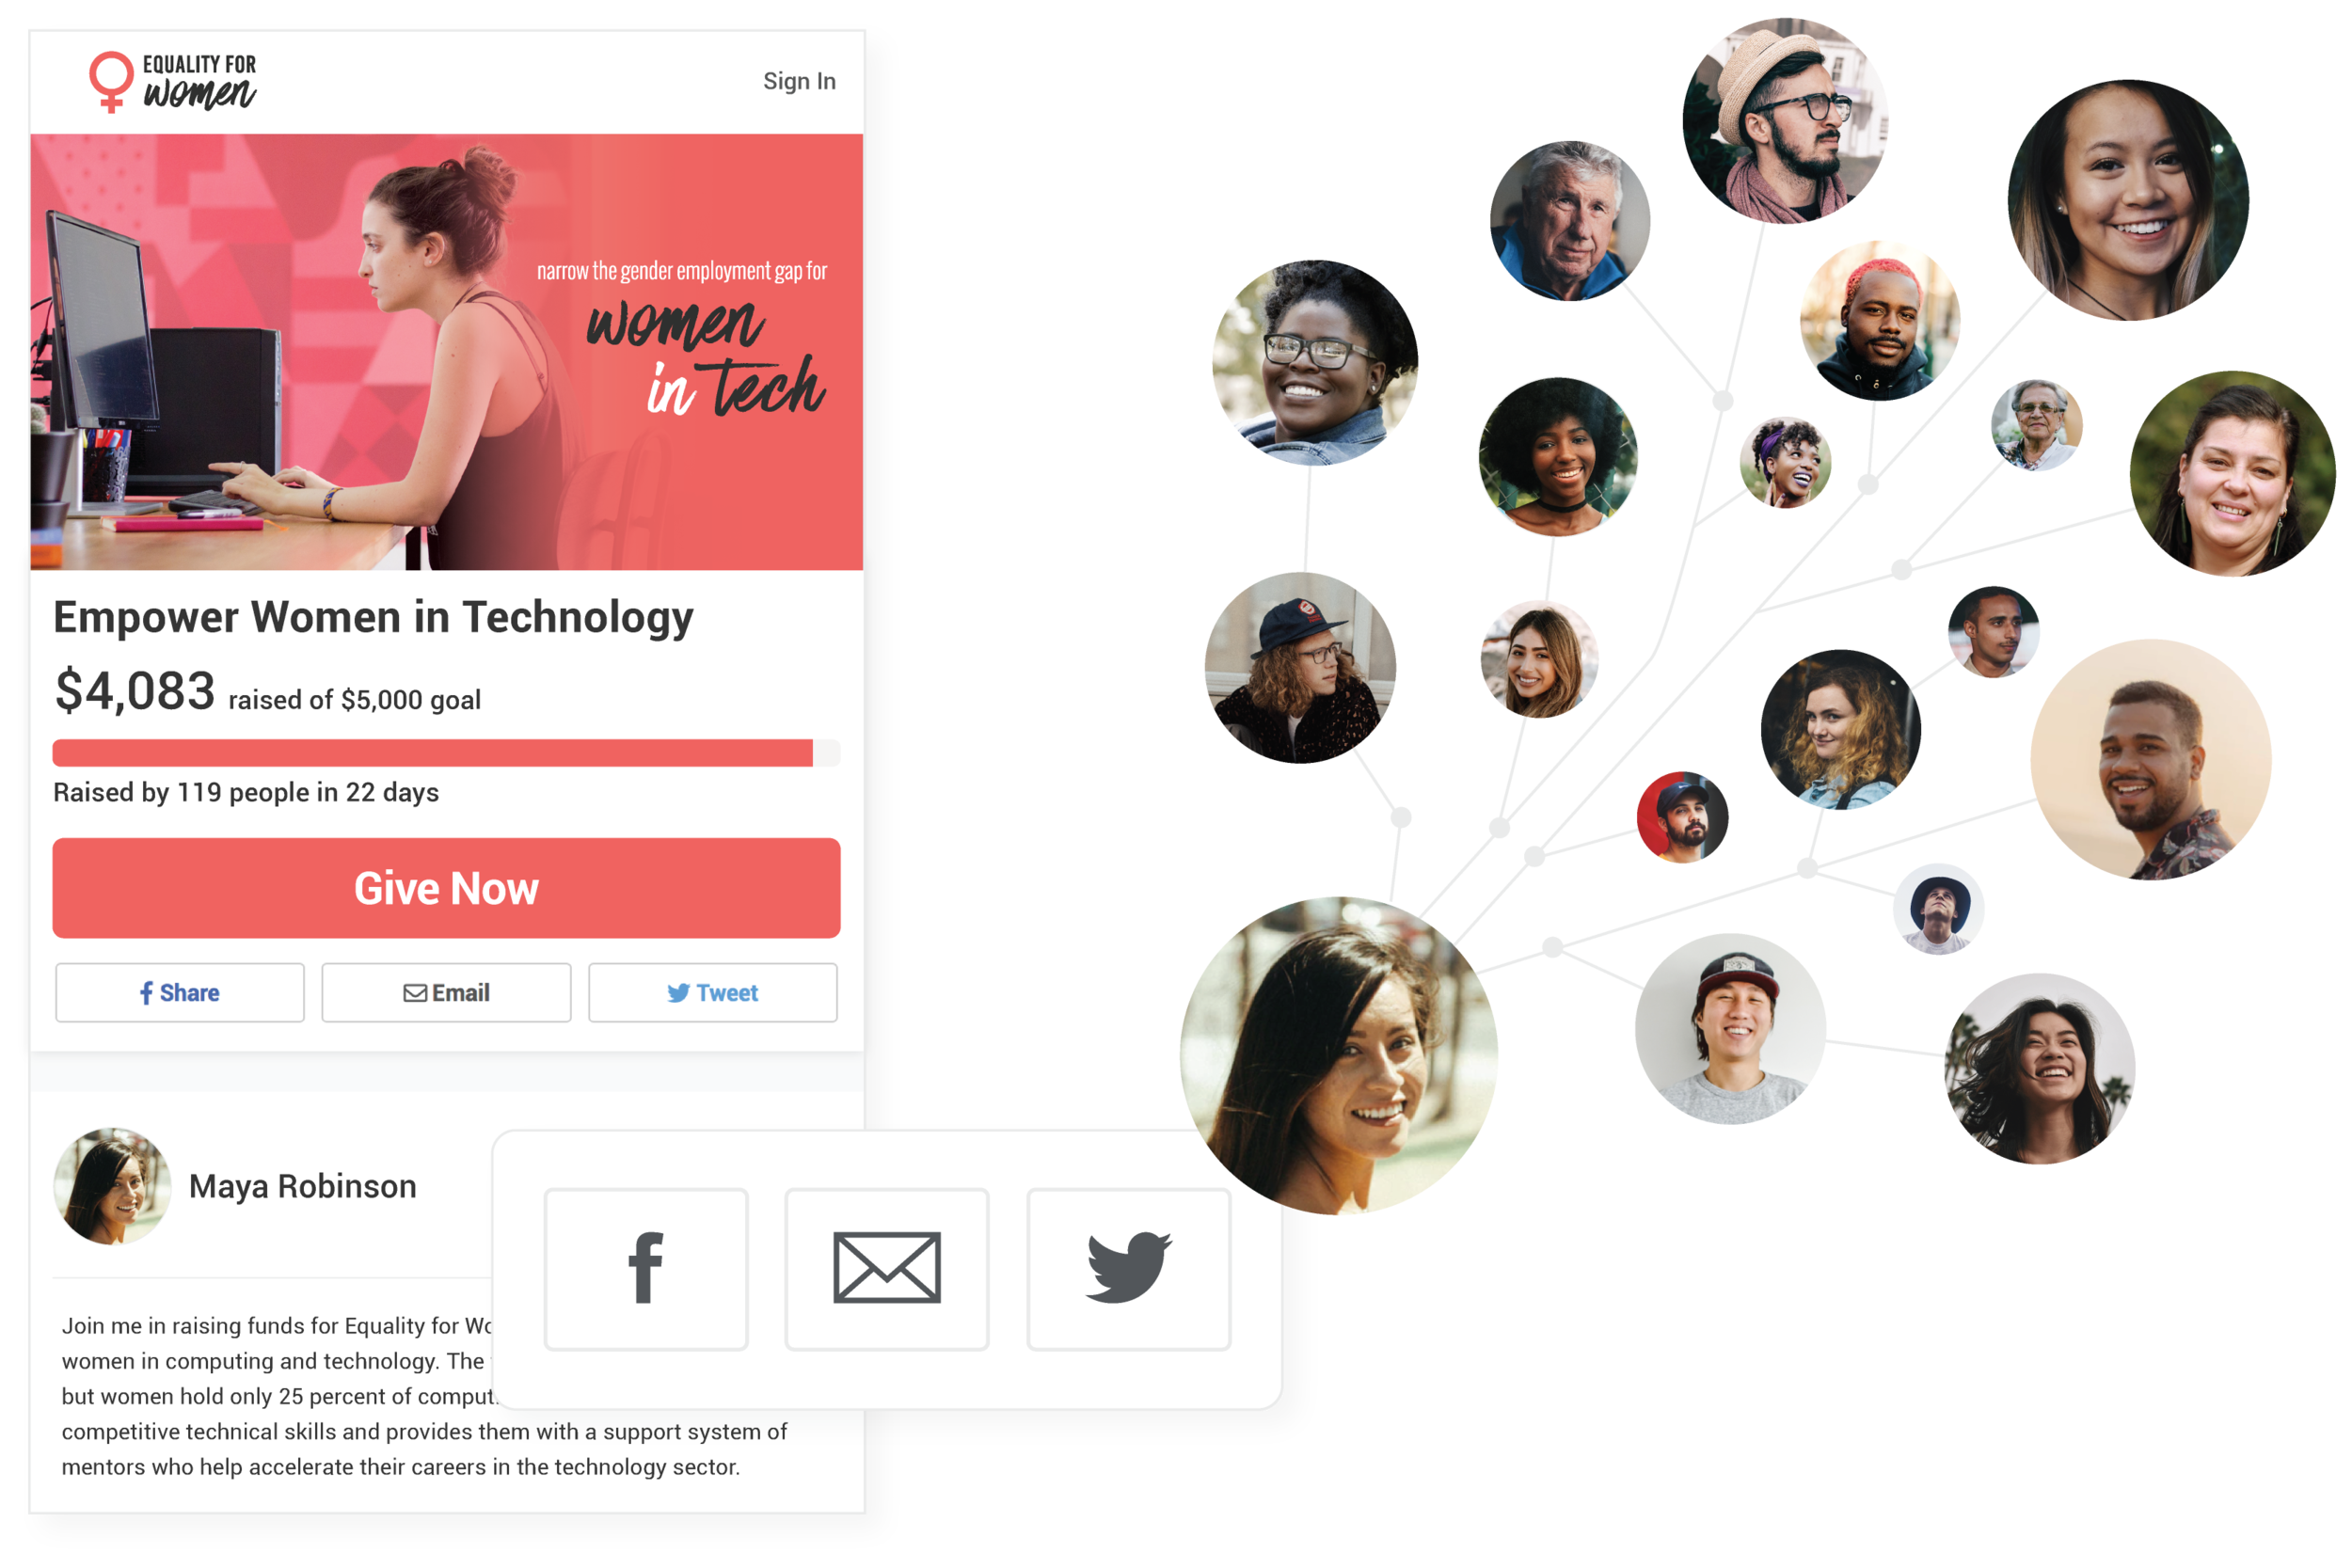 Amplify your voice, expand your base - You'll reach new networks when supporters share their peer-to-peer pages with family, friends and colleagues via Facebook, Twitter and email.